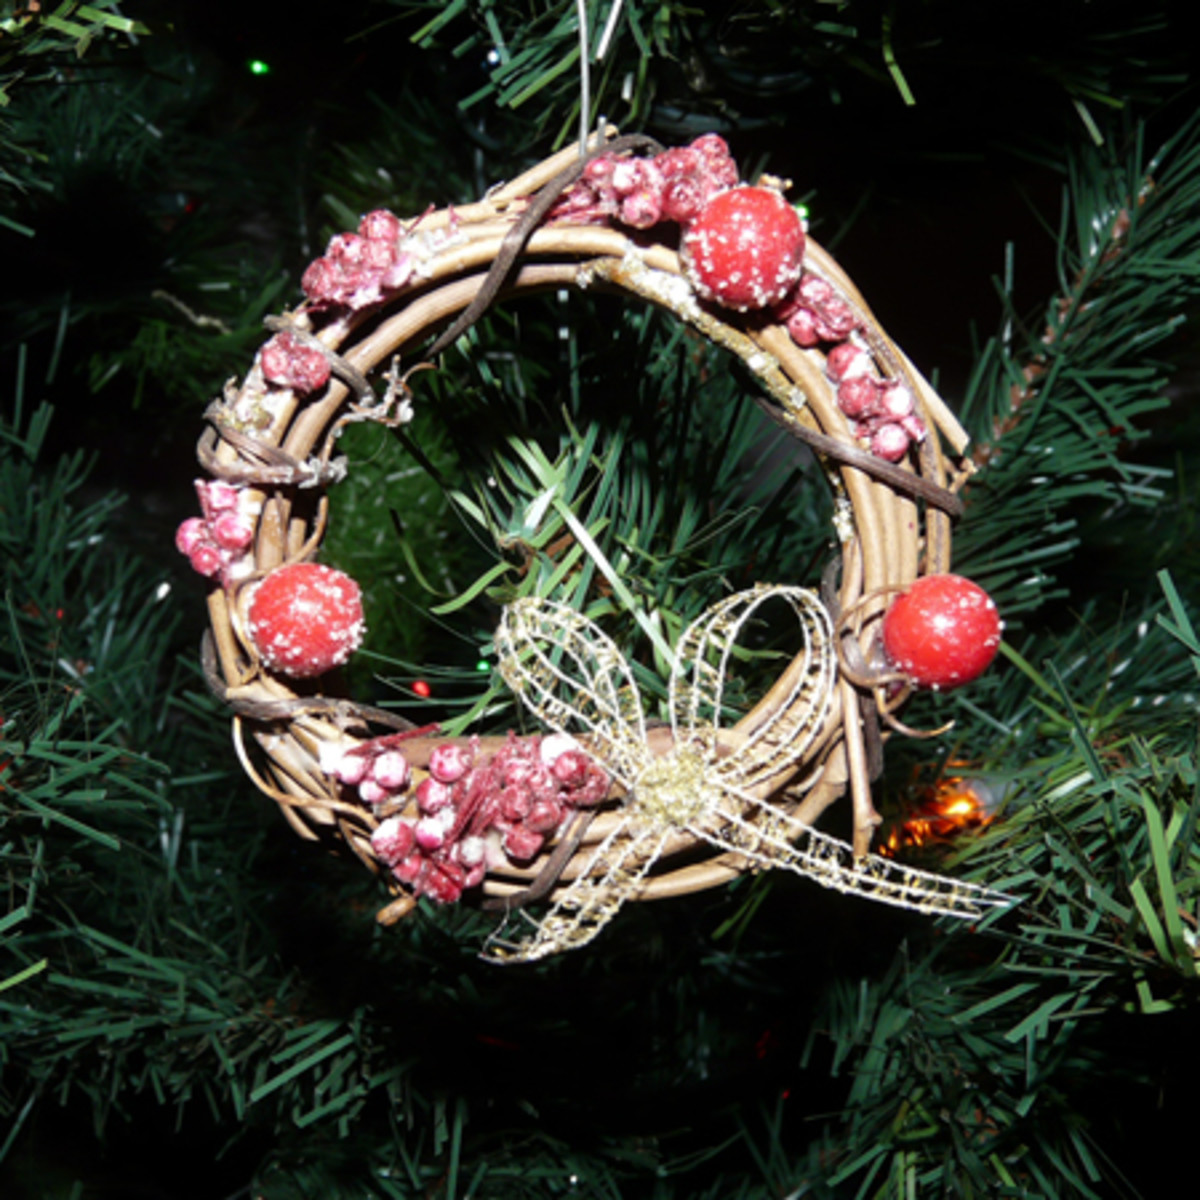 Mini Wreath Ornament with berries